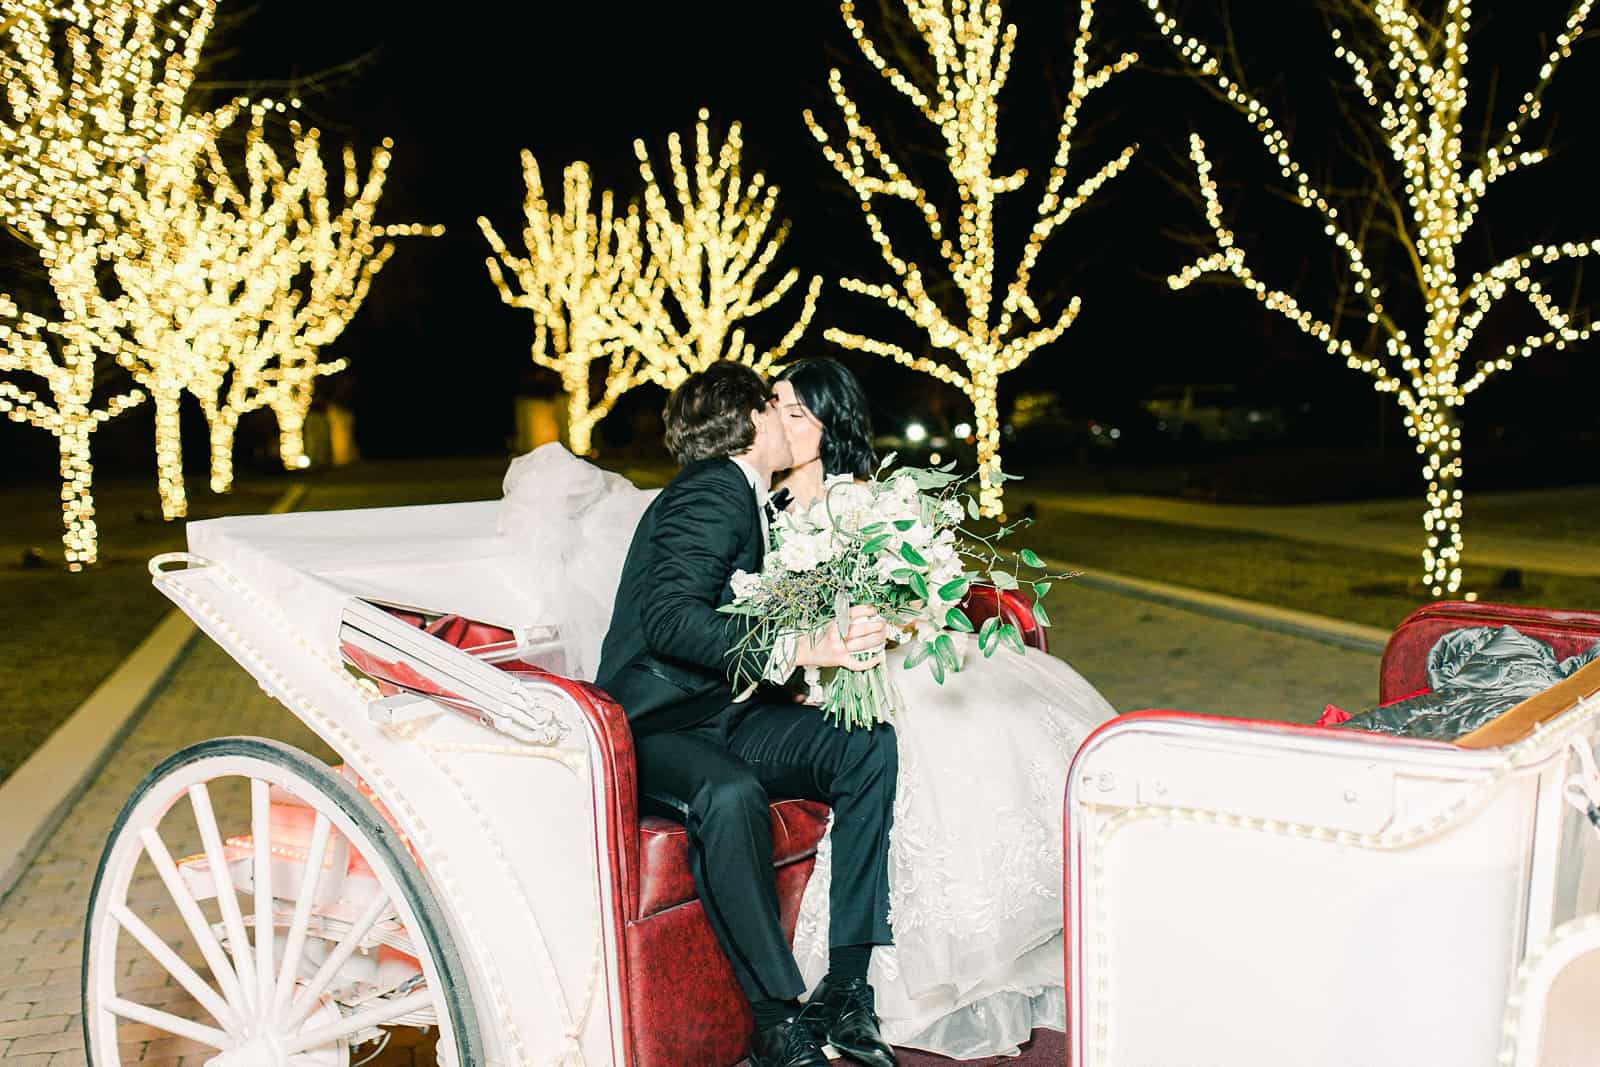 Bride and groom kiss in carriage